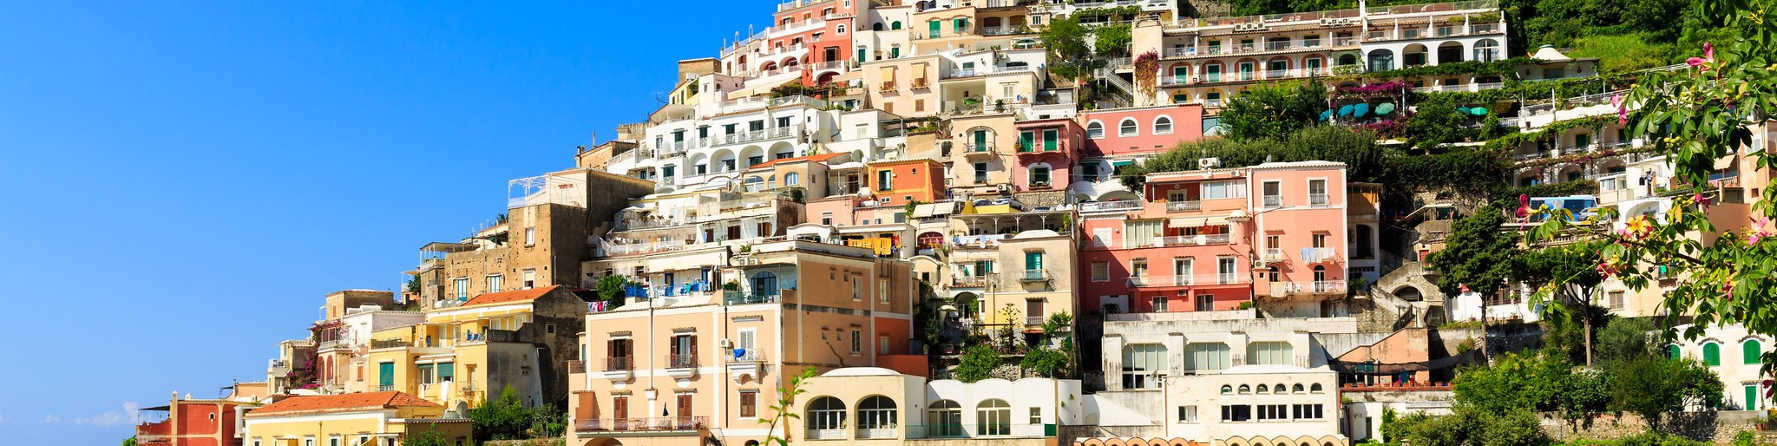 Why should you visit Positano?